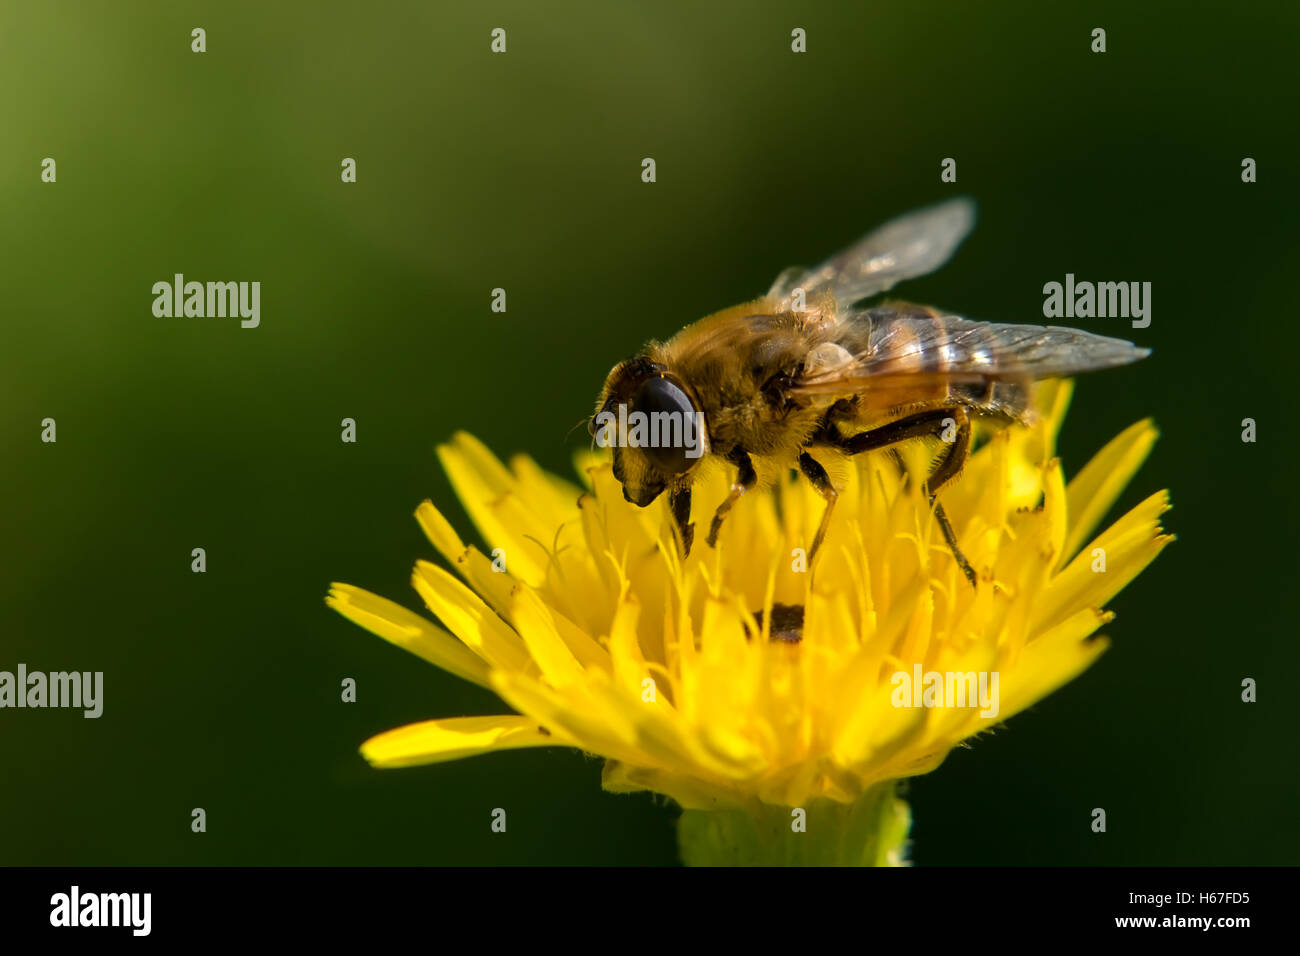 A Bee collecting nectar on a yellow flower Stock Photo